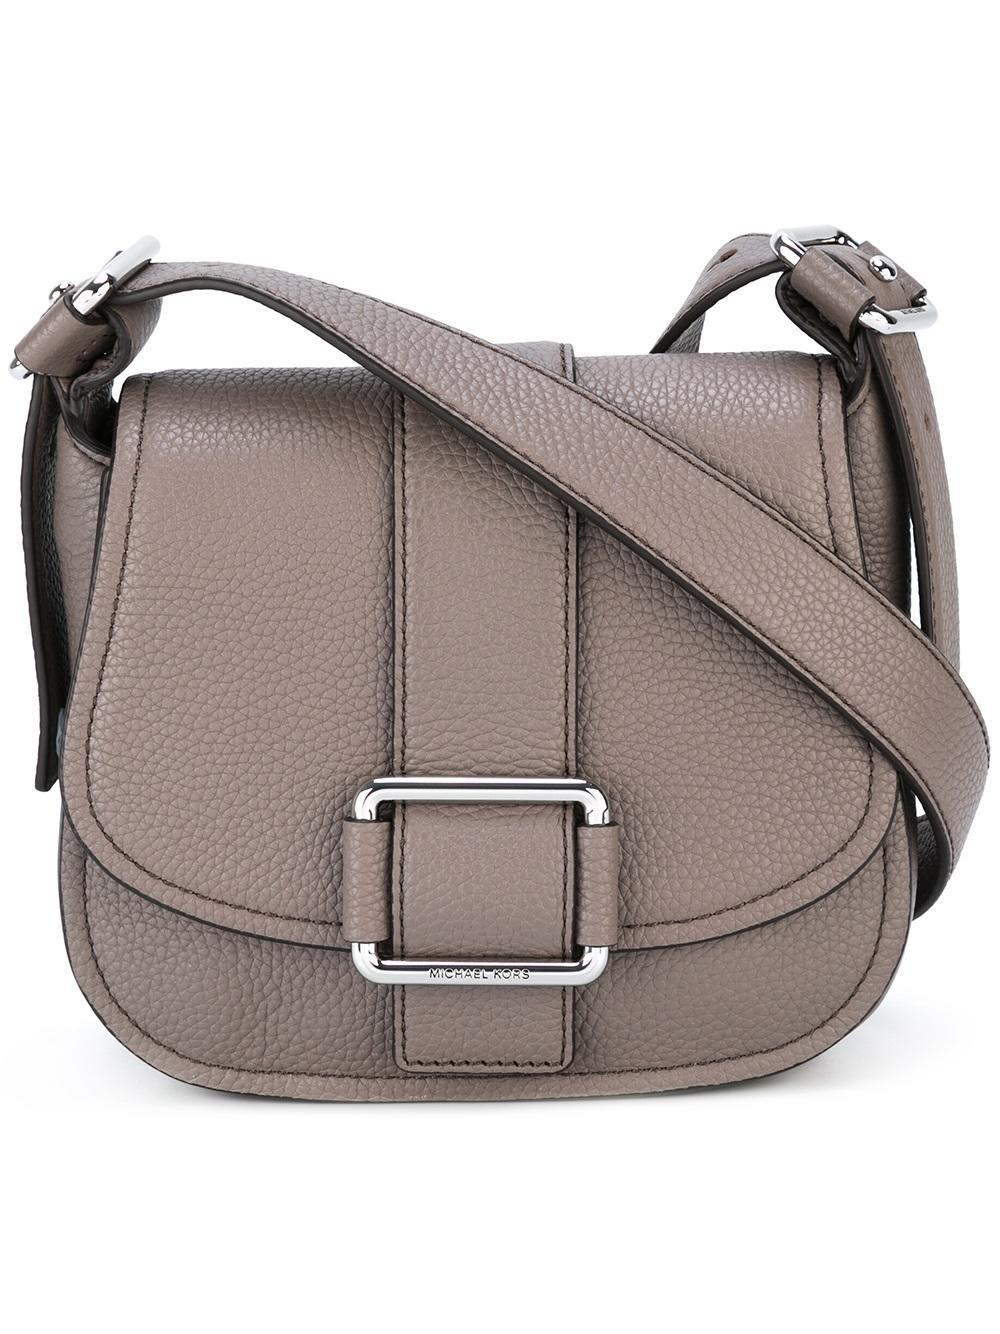 af6fbd5d2fa7 MICHAEL Michael Kors Maxine Saddle Crossbody Bag in Gray - Lyst